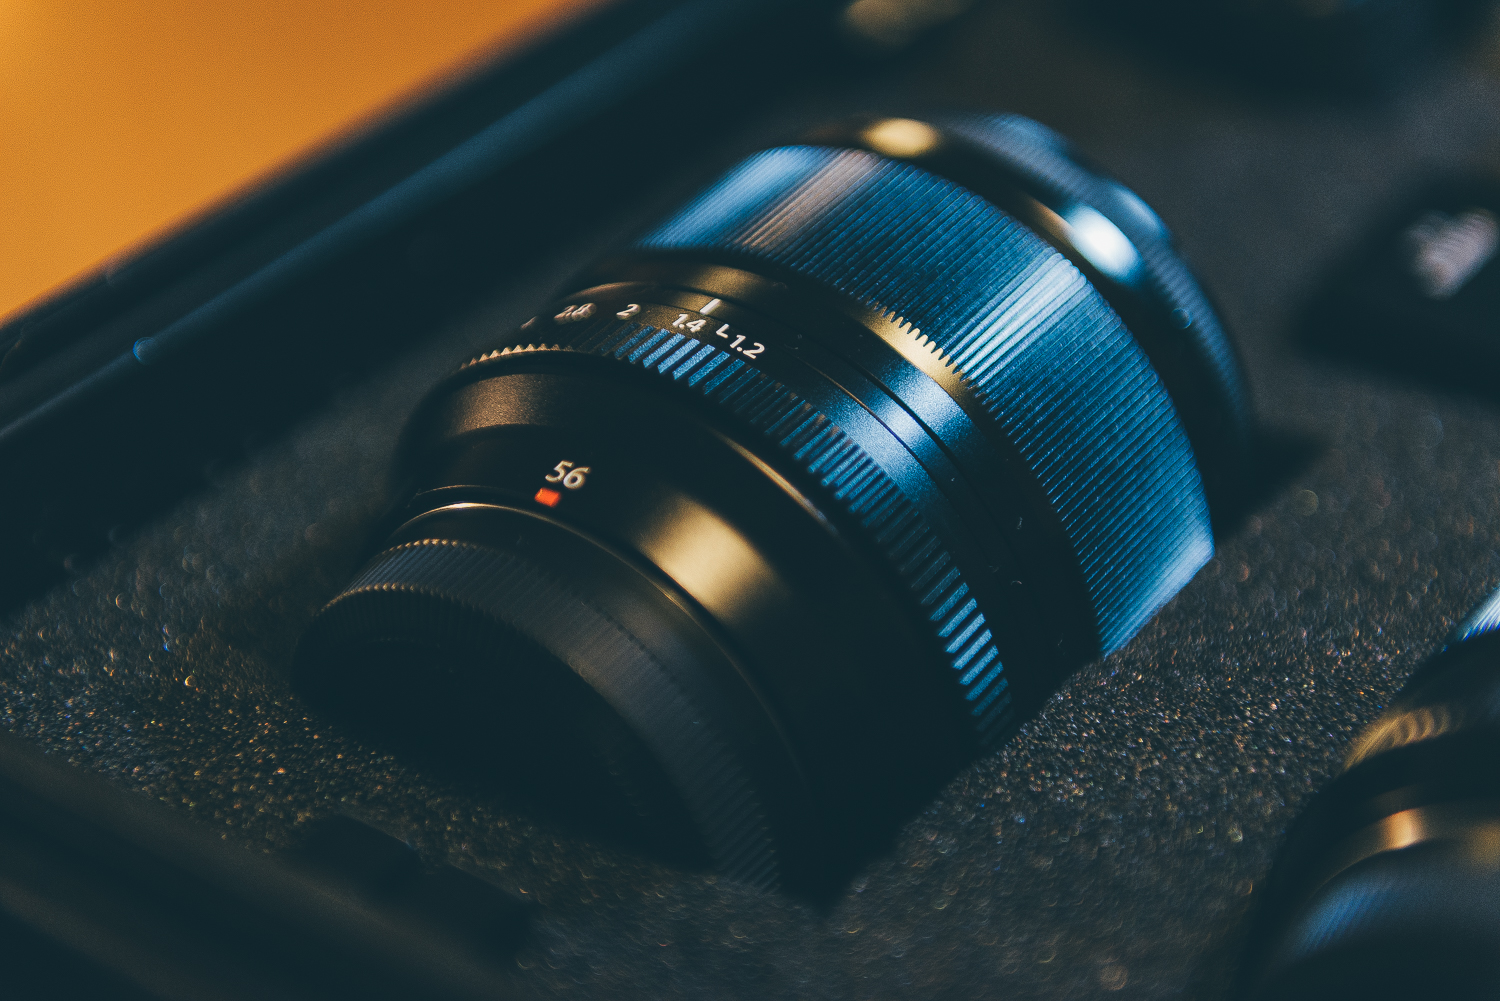 The fastest lens in my kit, the gorgeous 56mm 1.2...